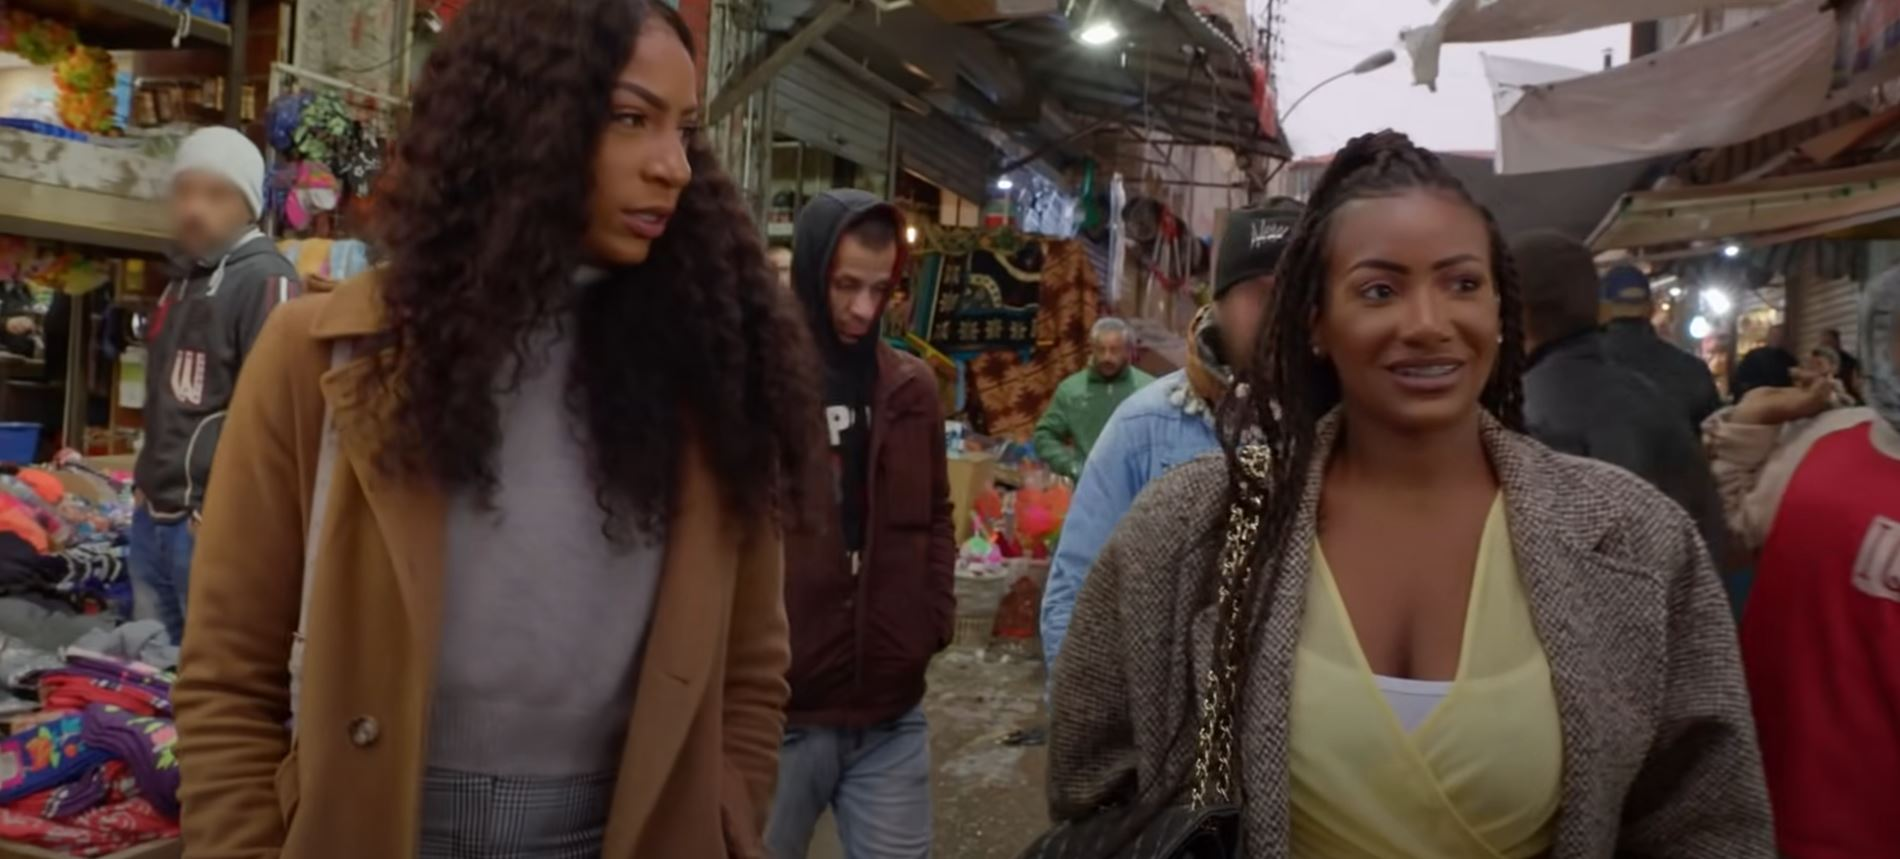 Brittany and Angela on '90 Day Fiancé'